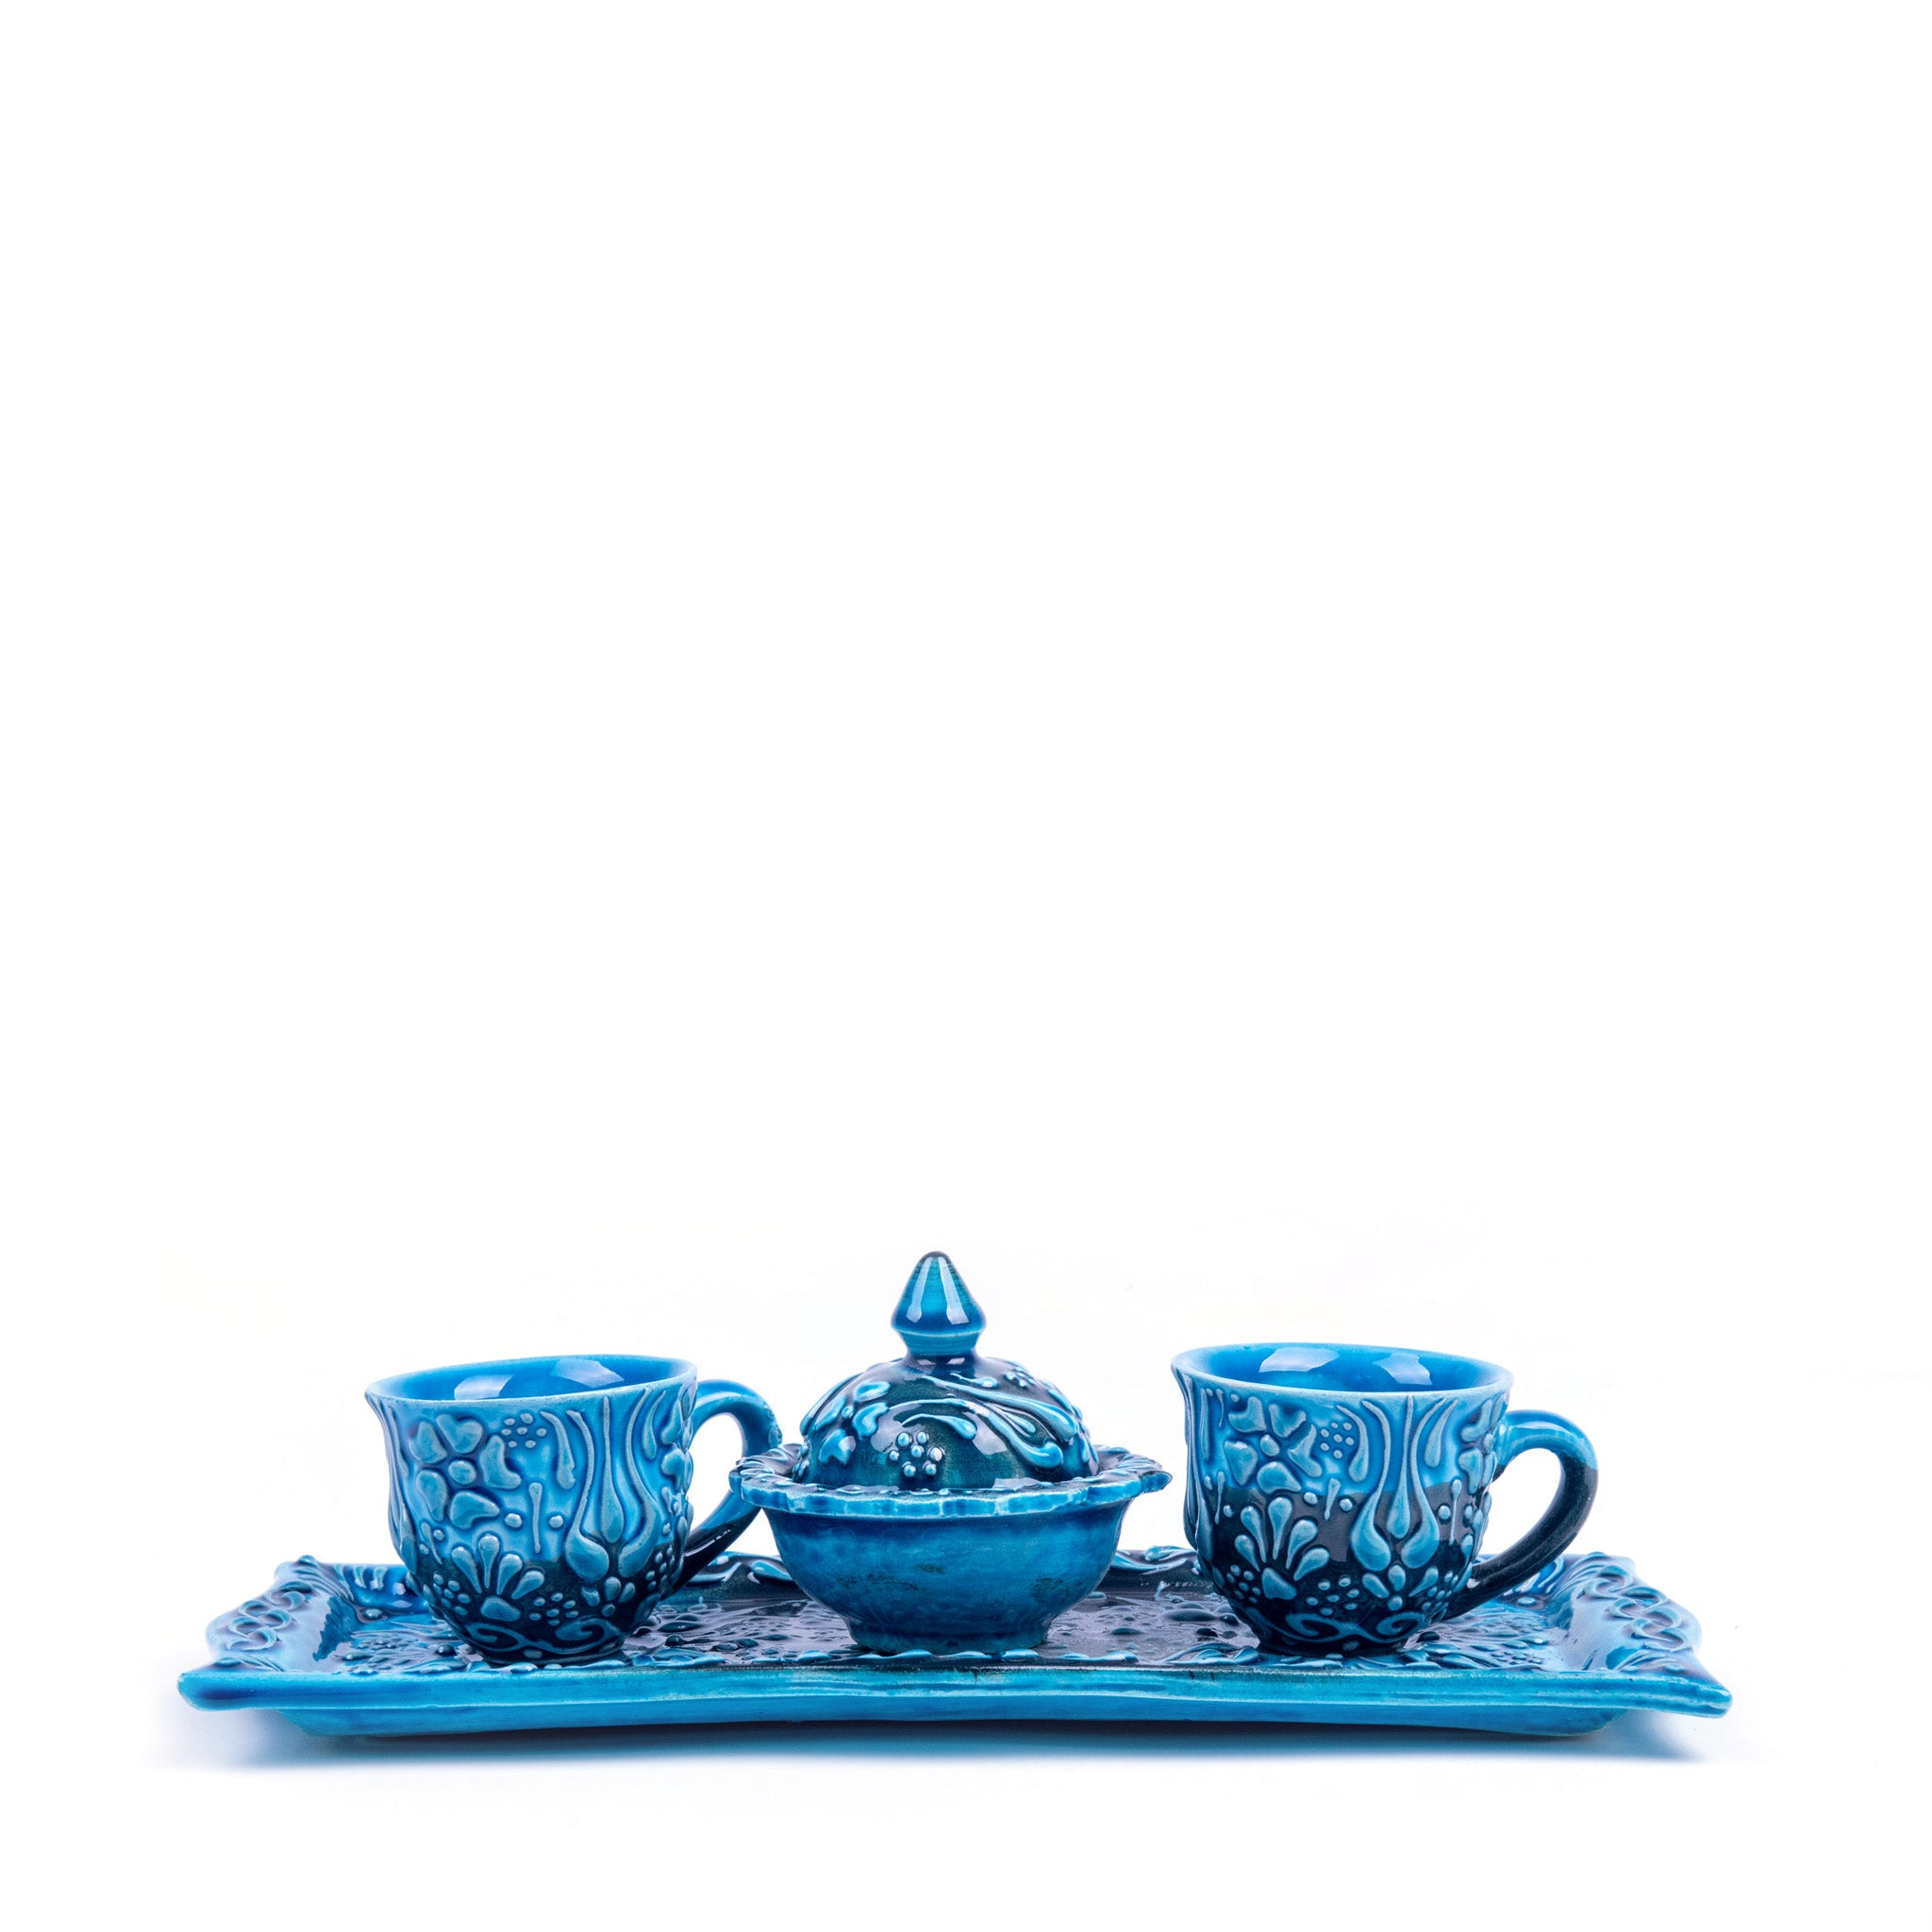 Turkish Ceramic Iznik Design Handmade Coffee Set Of Two With Tray - Turquoise-1